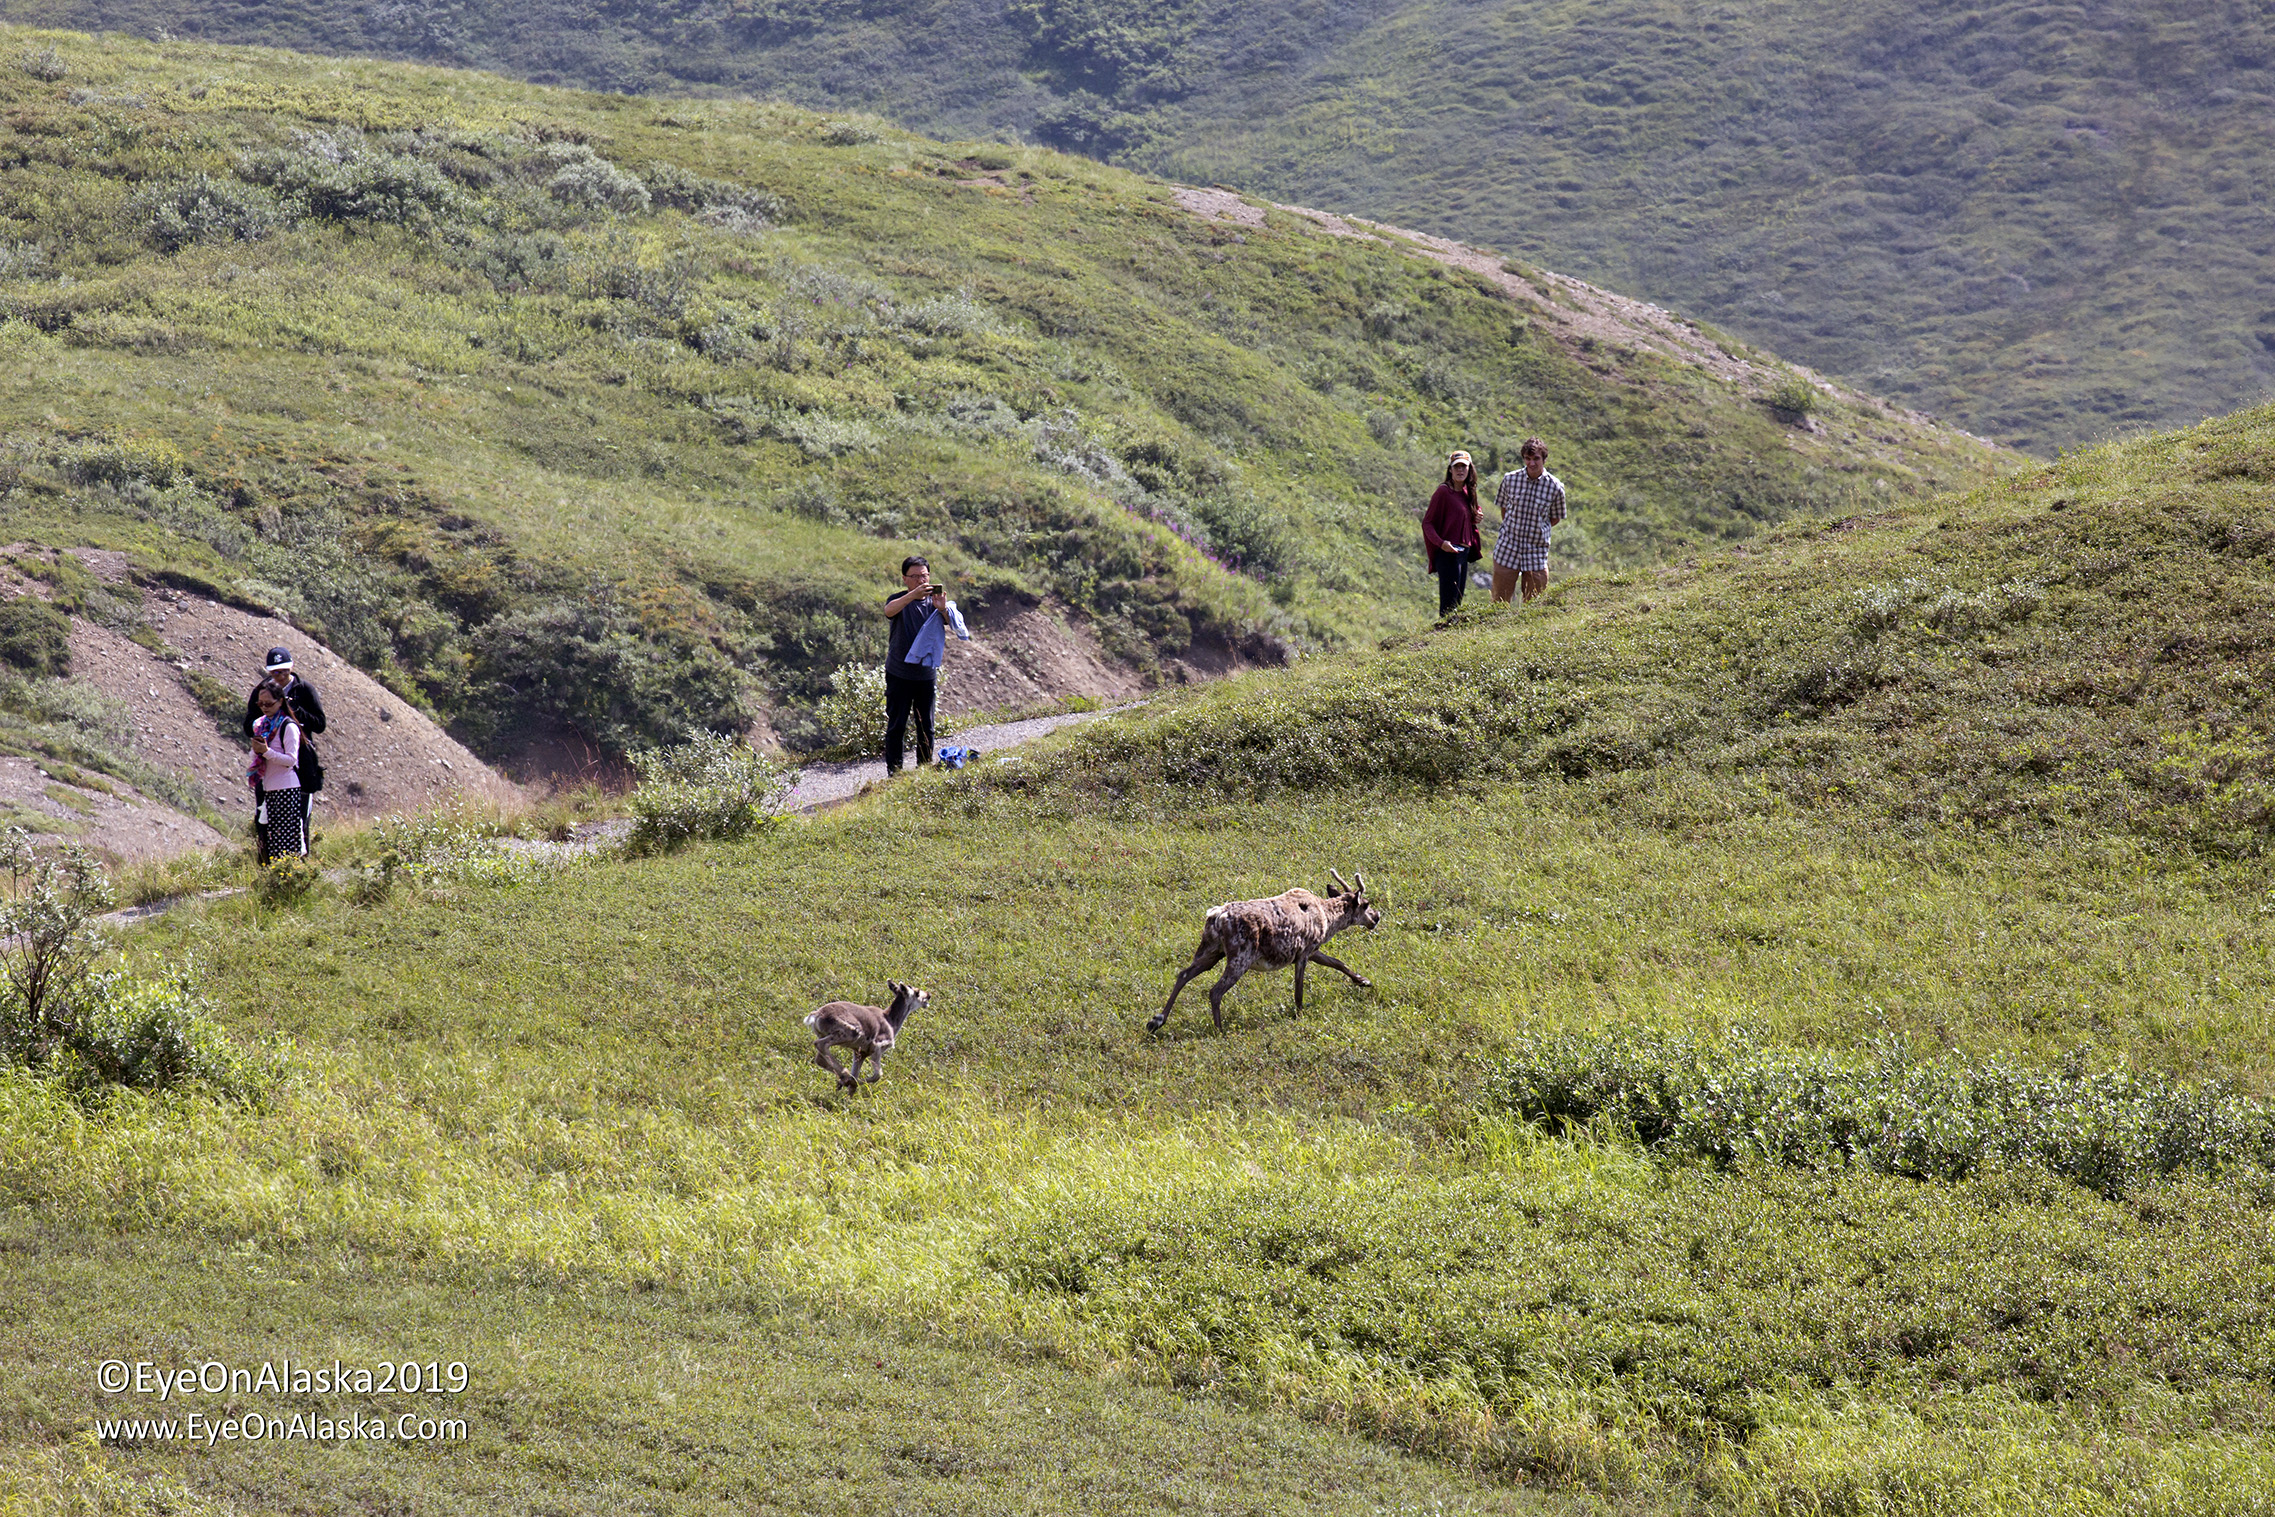 Some visitors hiking the trails below the Eielson Visitor Center had a close encounter with a caribou cow and calf.